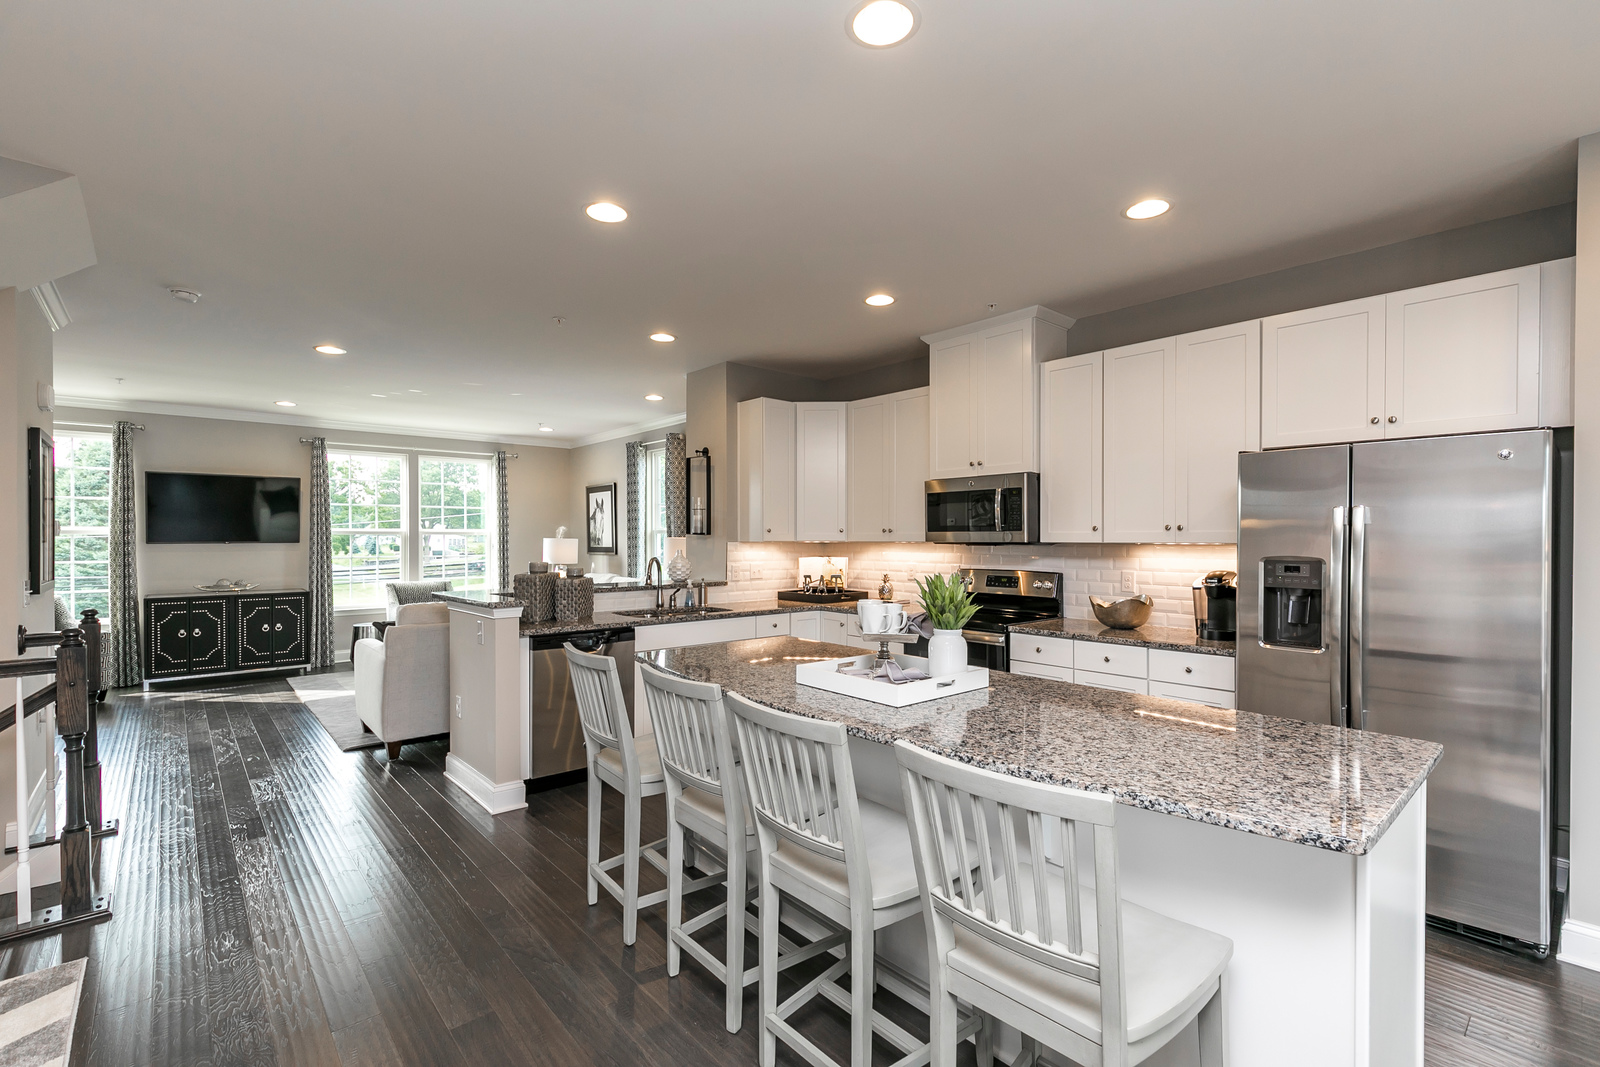 New homes for sale at stargazer village townhomes in romansville pa within the downingtown for Ryan homes design center maryland